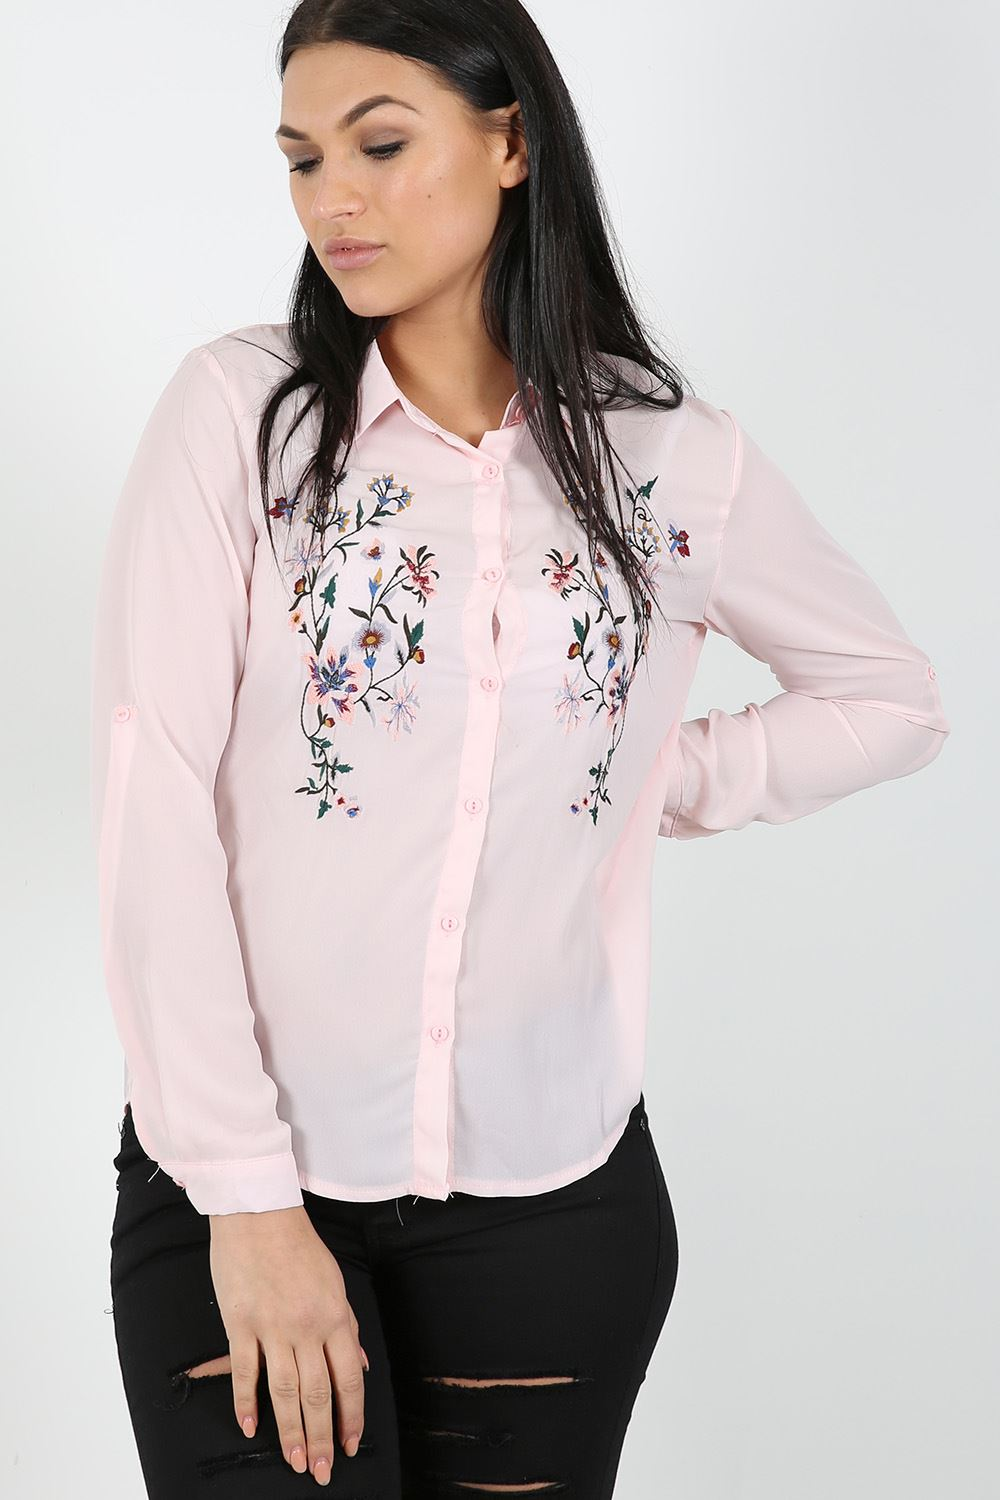 White Collared Blouses. Showing 40 of 90 results that match your query. Search Product Result. Product - Womens Loose Summer Casual Beach Tops Ladies Cold Shoulder T Shirt Blouses. Product Image. Price $ Product Title. Womens Loose Summer Casual Beach Tops Ladies Cold Shoulder T Shirt Blouses.